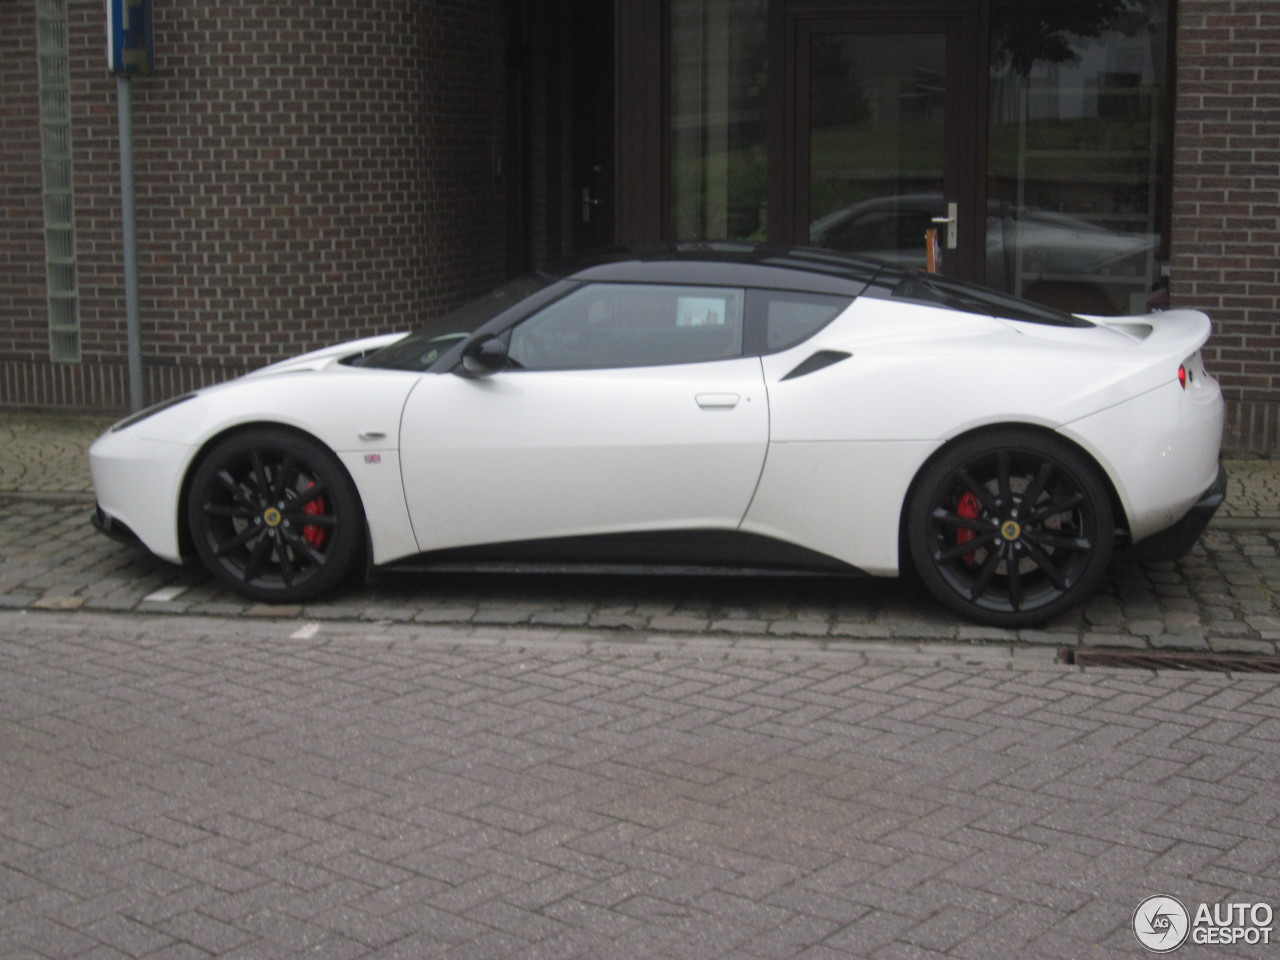 https://ag-spots-2013.o.auroraobjects.eu/2013/05/31/lotus-evora-s-sports-racer-c109231052013171825_1.jpg